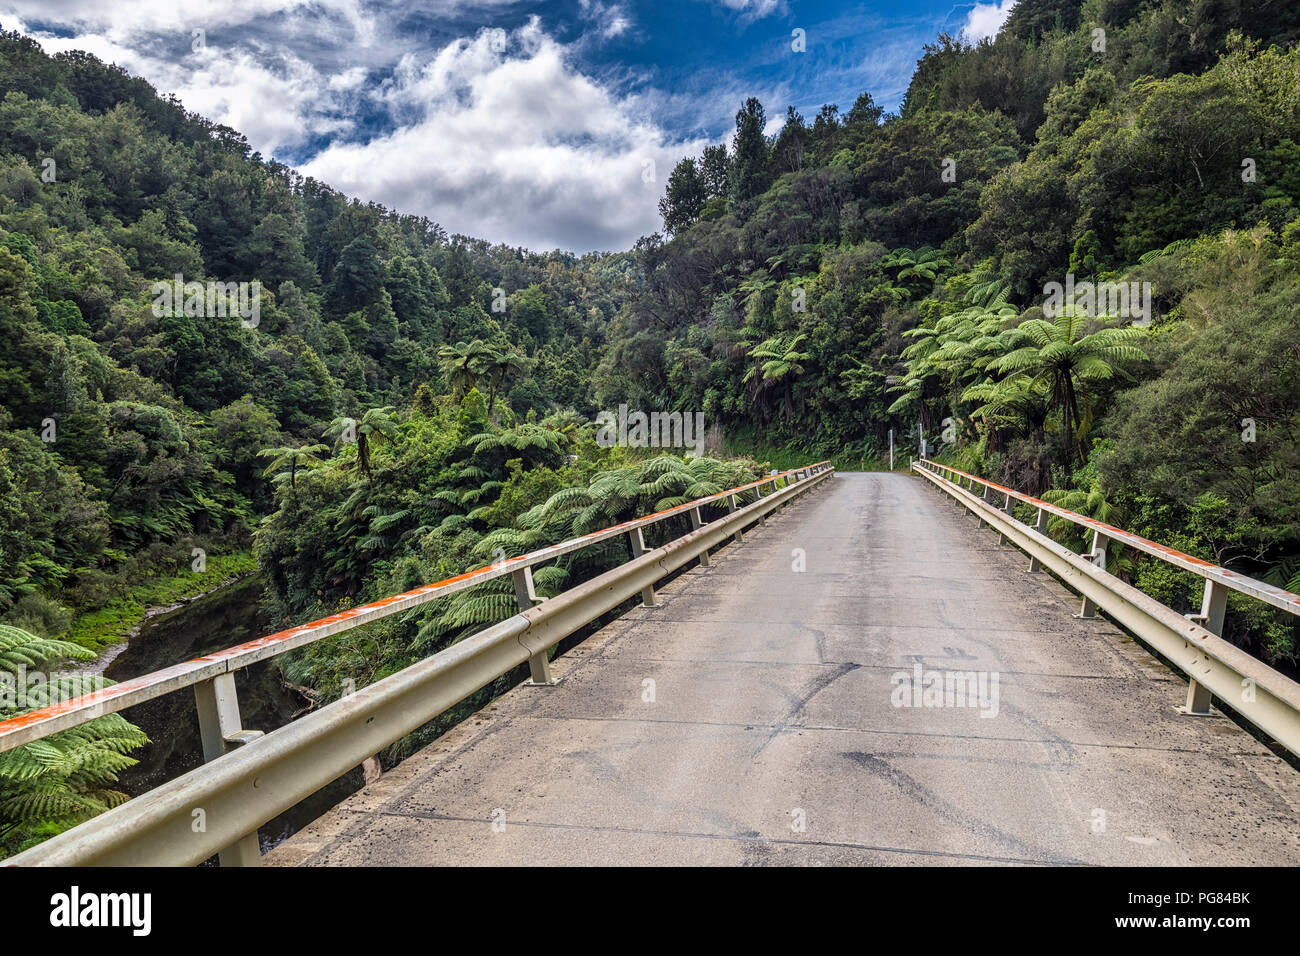 New Zealand, North Island, Taranaki, Forgotten World Highway Stock Photo